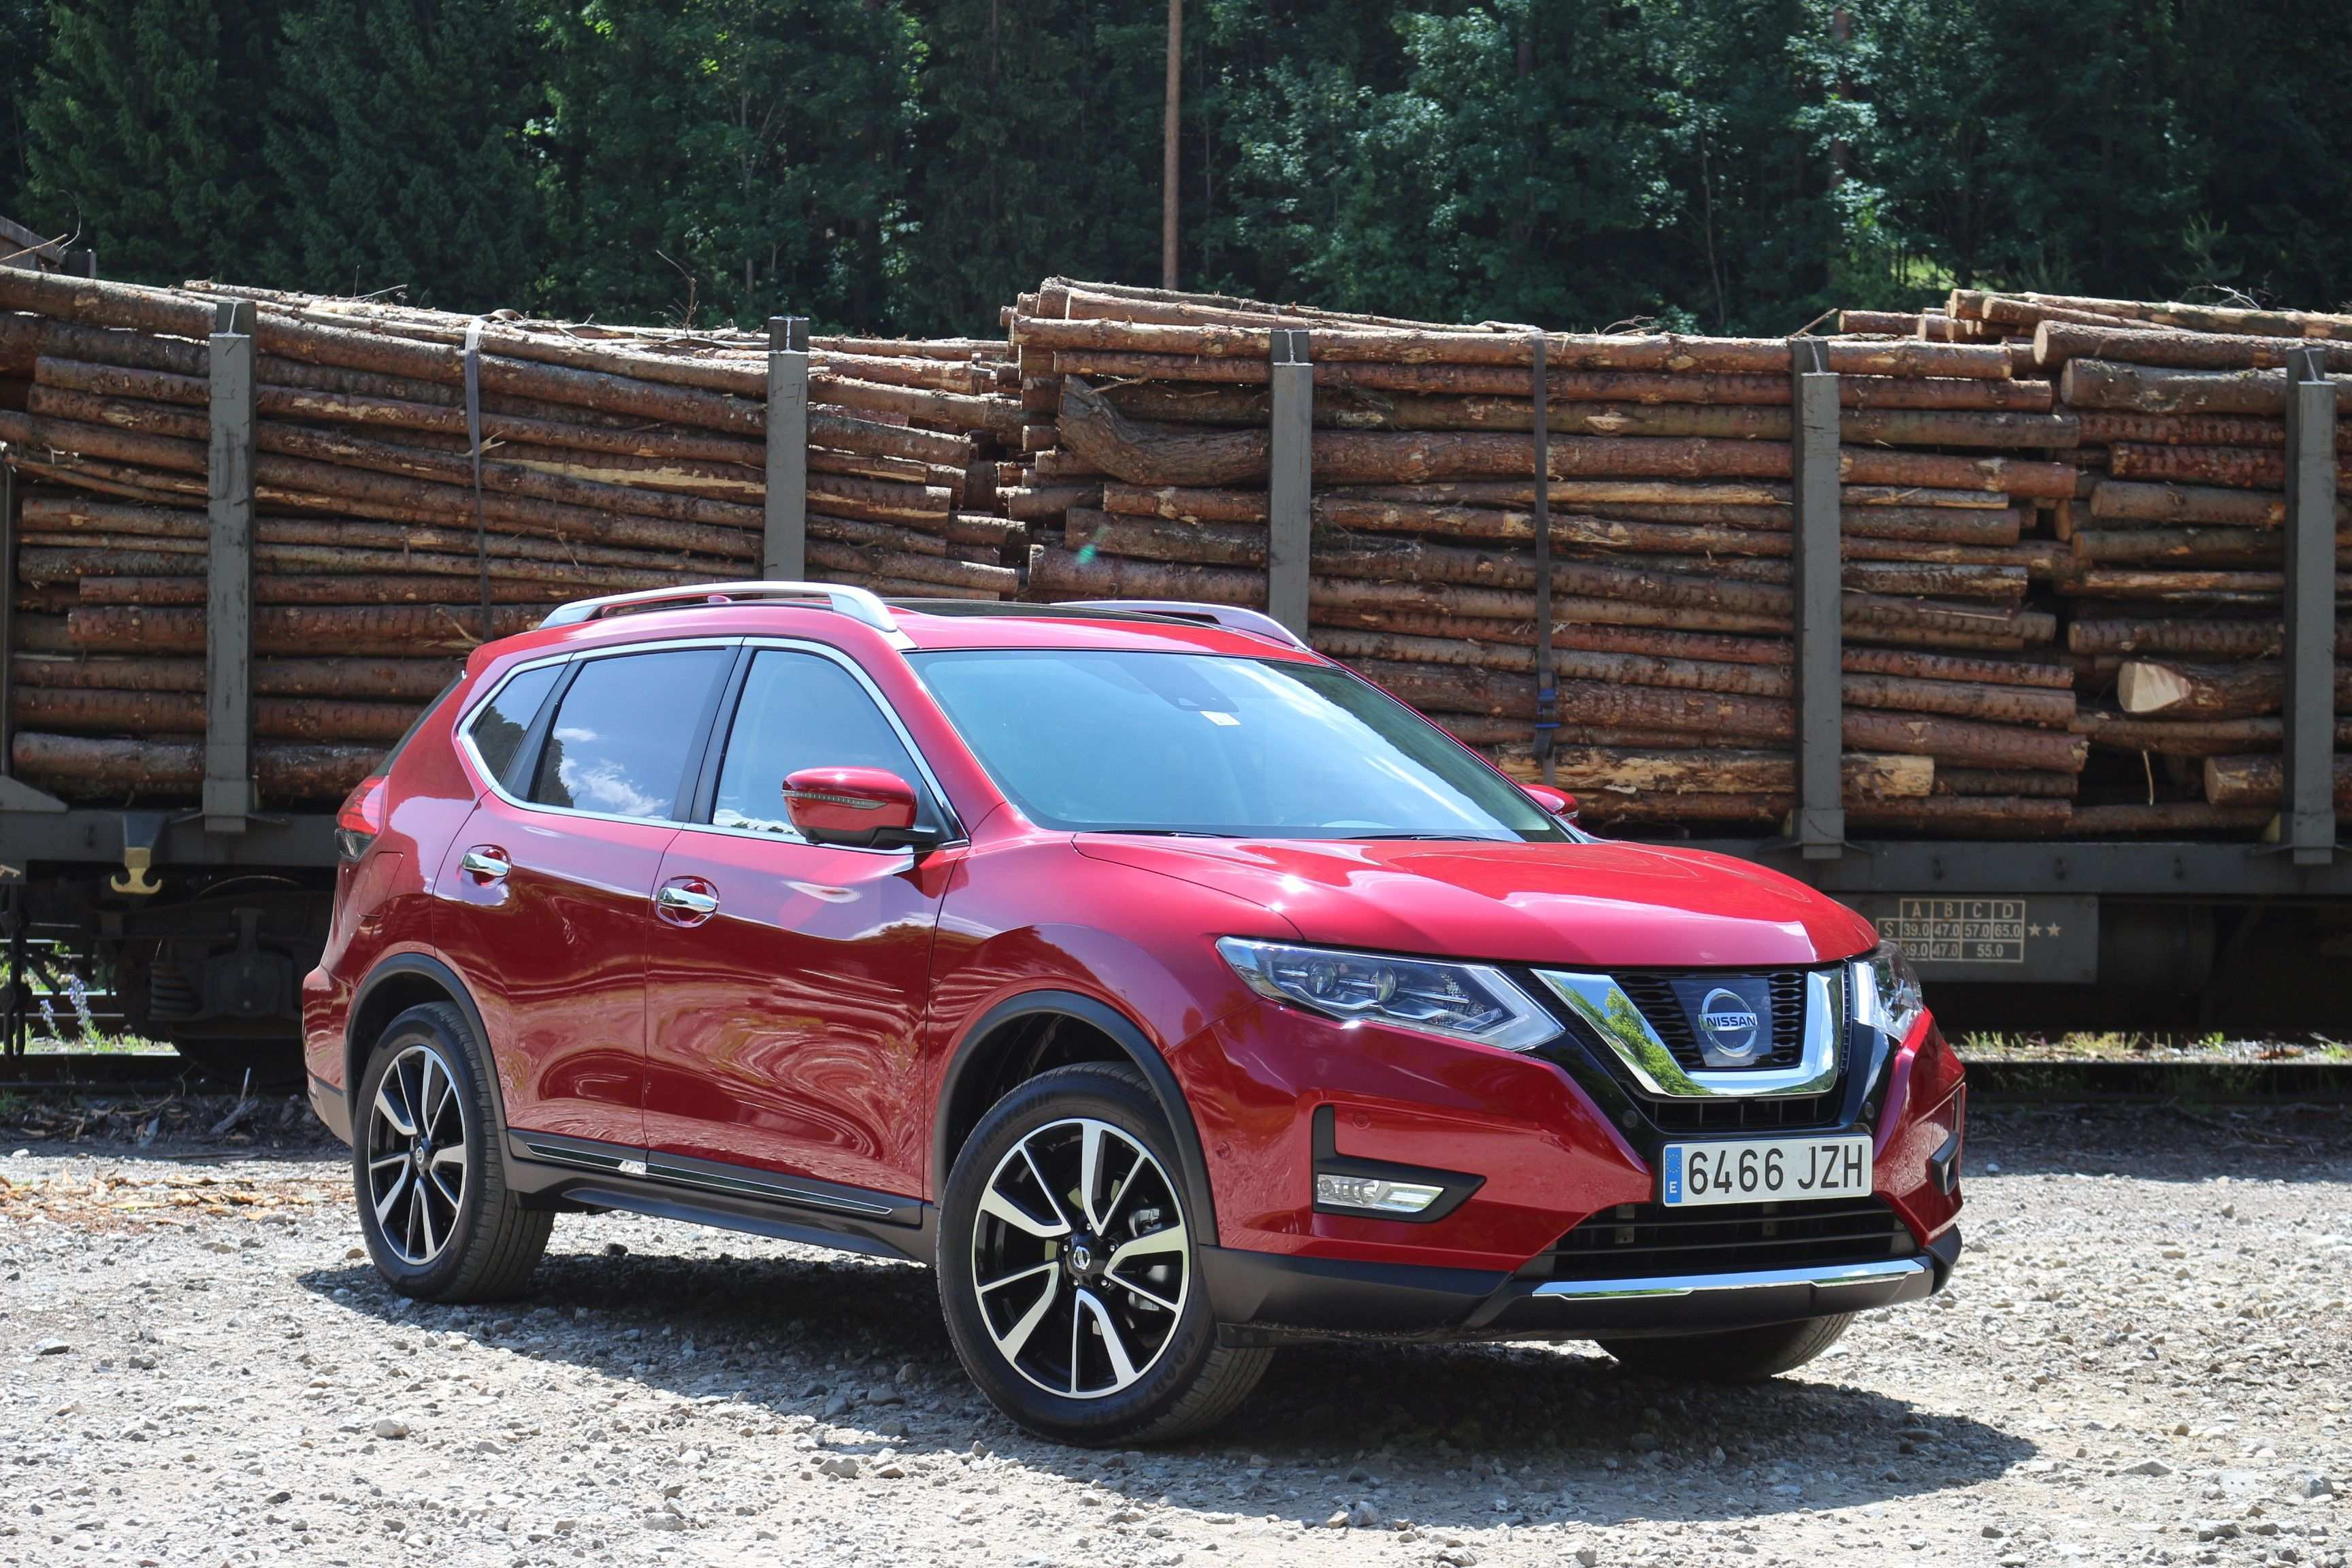 78 All New Best Nissan 2019 Crossover Release Date And Specs Release with Best Nissan 2019 Crossover Release Date And Specs